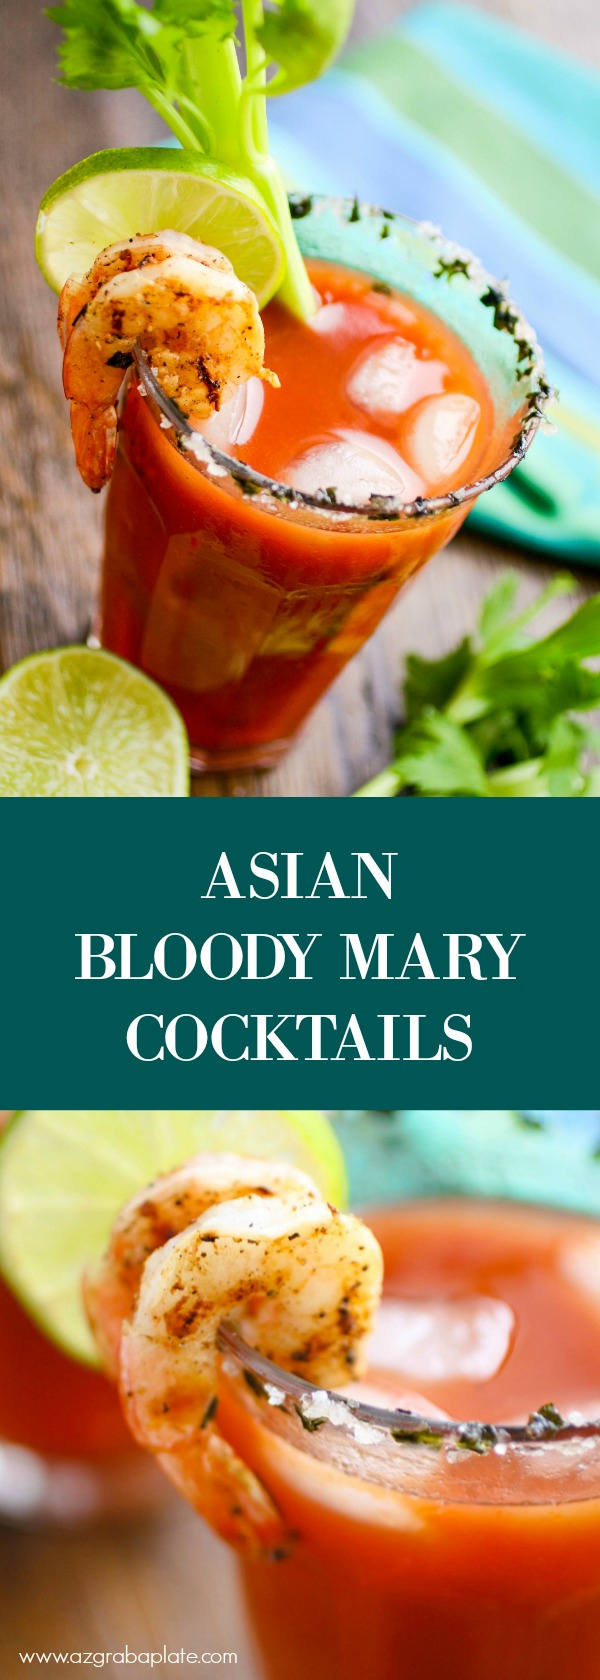 Asian Bloody Mary Cocktails are a fun cocktail to whip up for brunch. Your guests will love them!